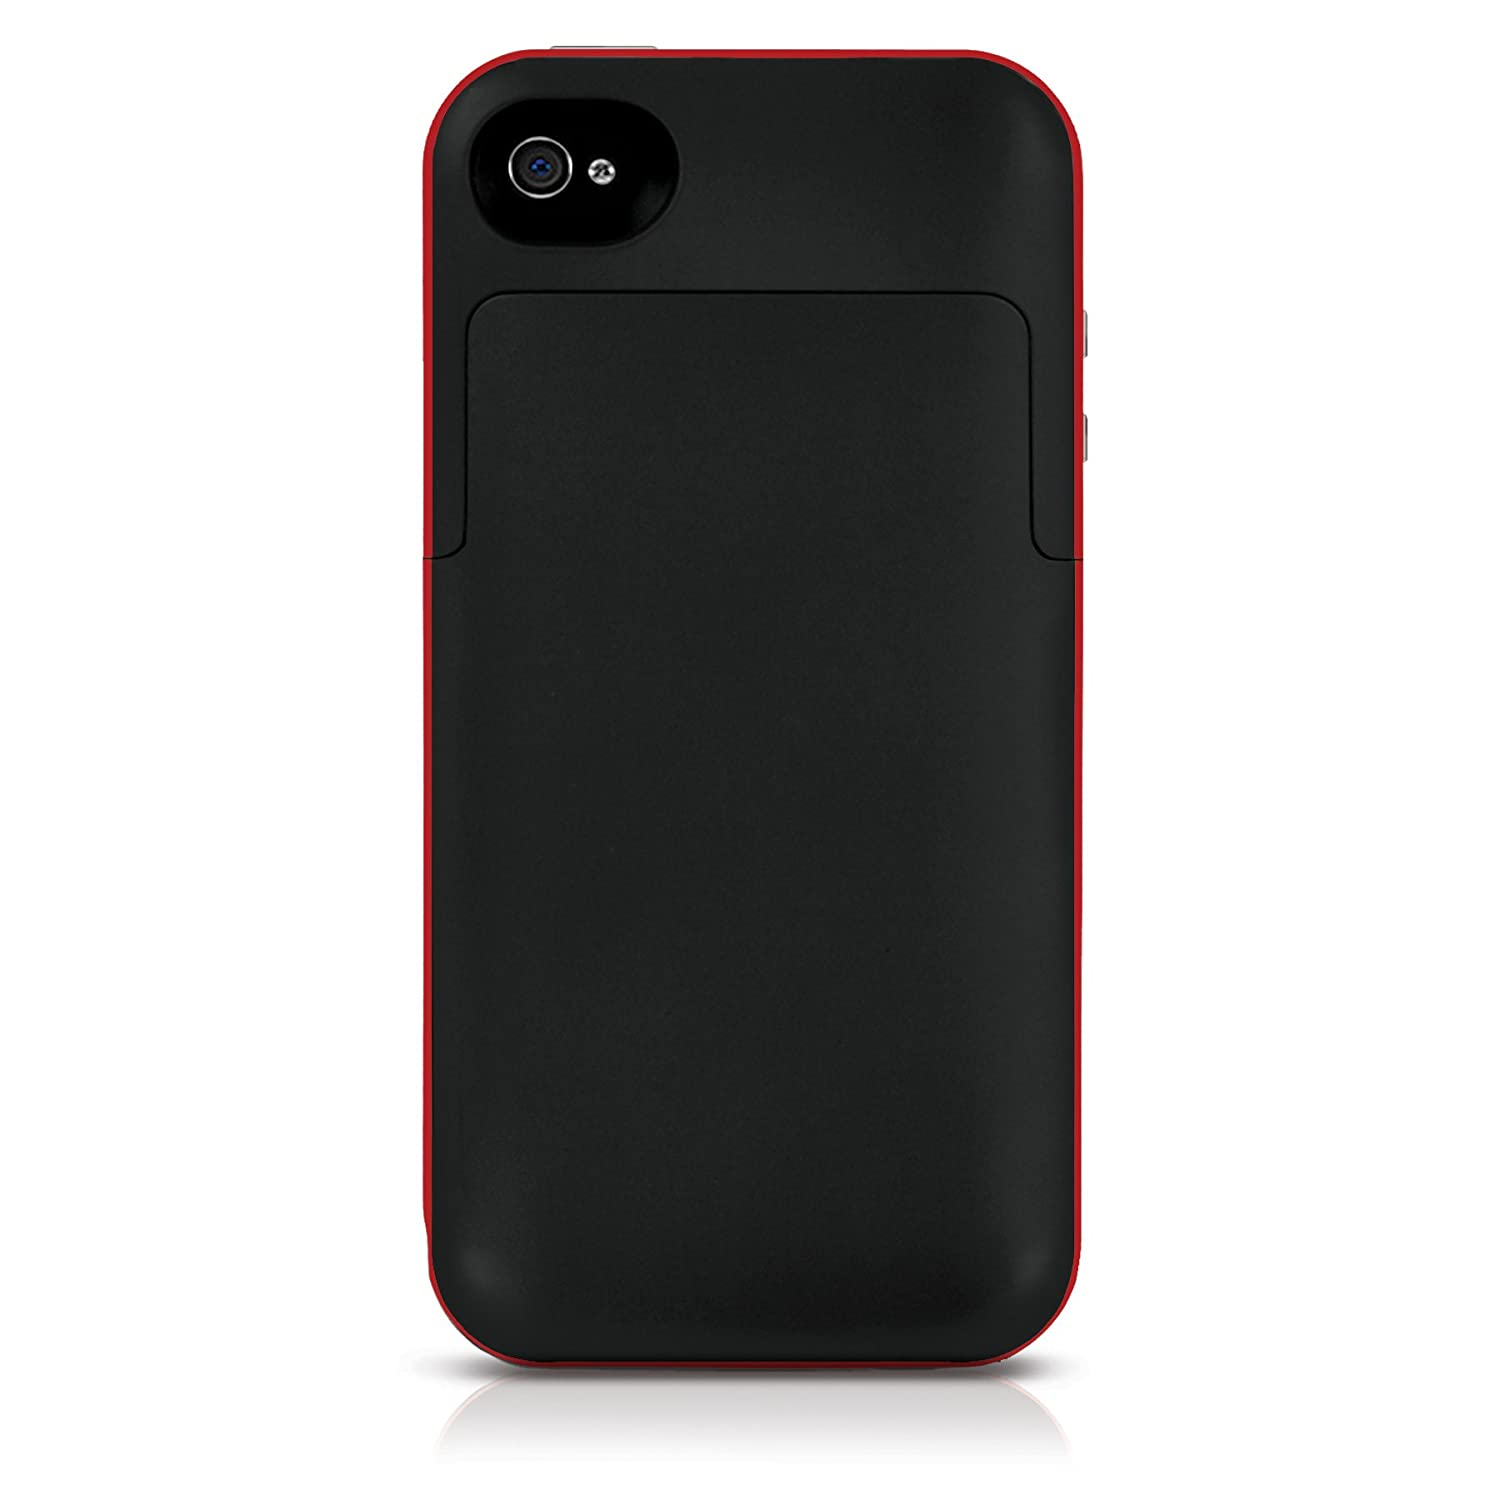 on sale 2d1d4 ddaaf Mophie Juice Pack Plus Case For iPhone 4 And 4S - Red